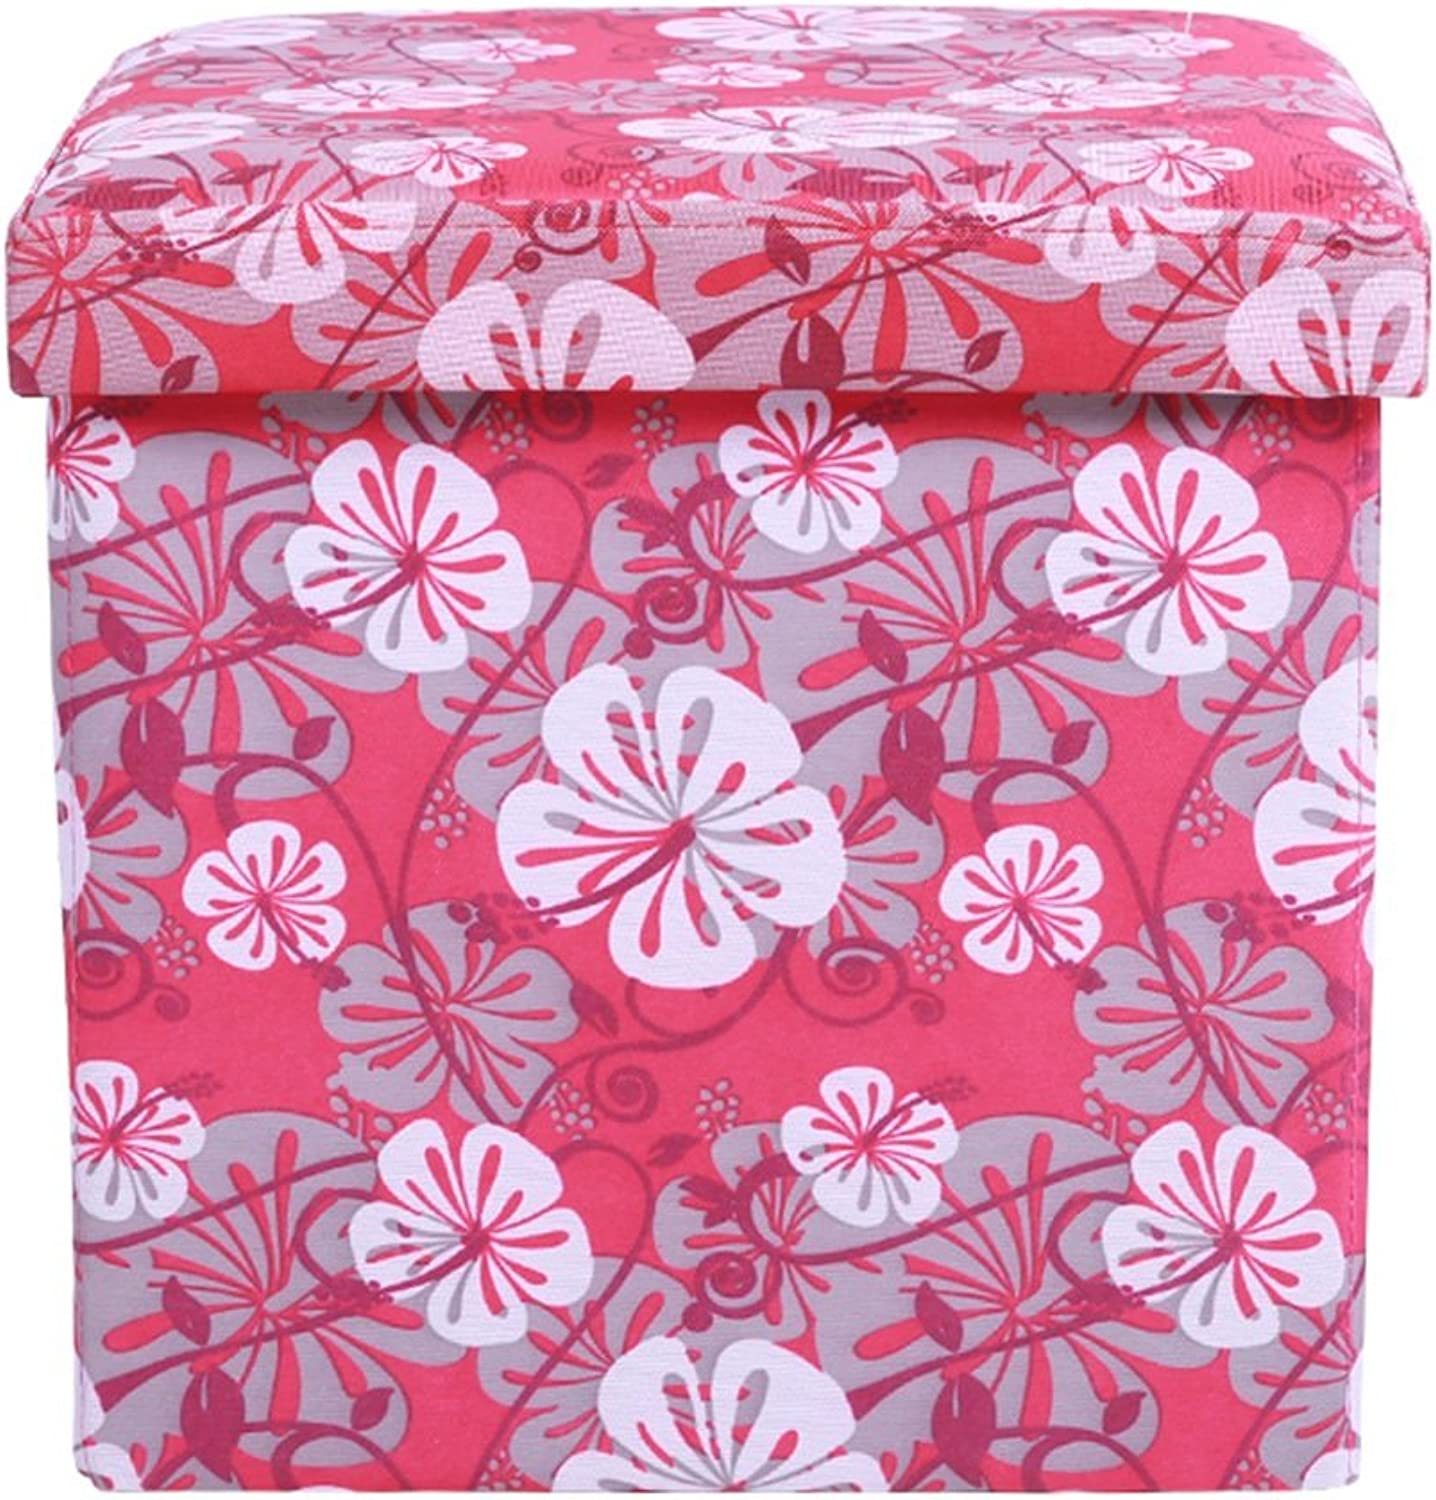 DDSS Oxford Cloth Flower Pattern Storage Stool shoes Bench Foyer Sofa Stool Living Room Bedroom Dressing Table Shopping Mall shoes Store Footstool Multi-Function Storage Stool (color   Style-6)